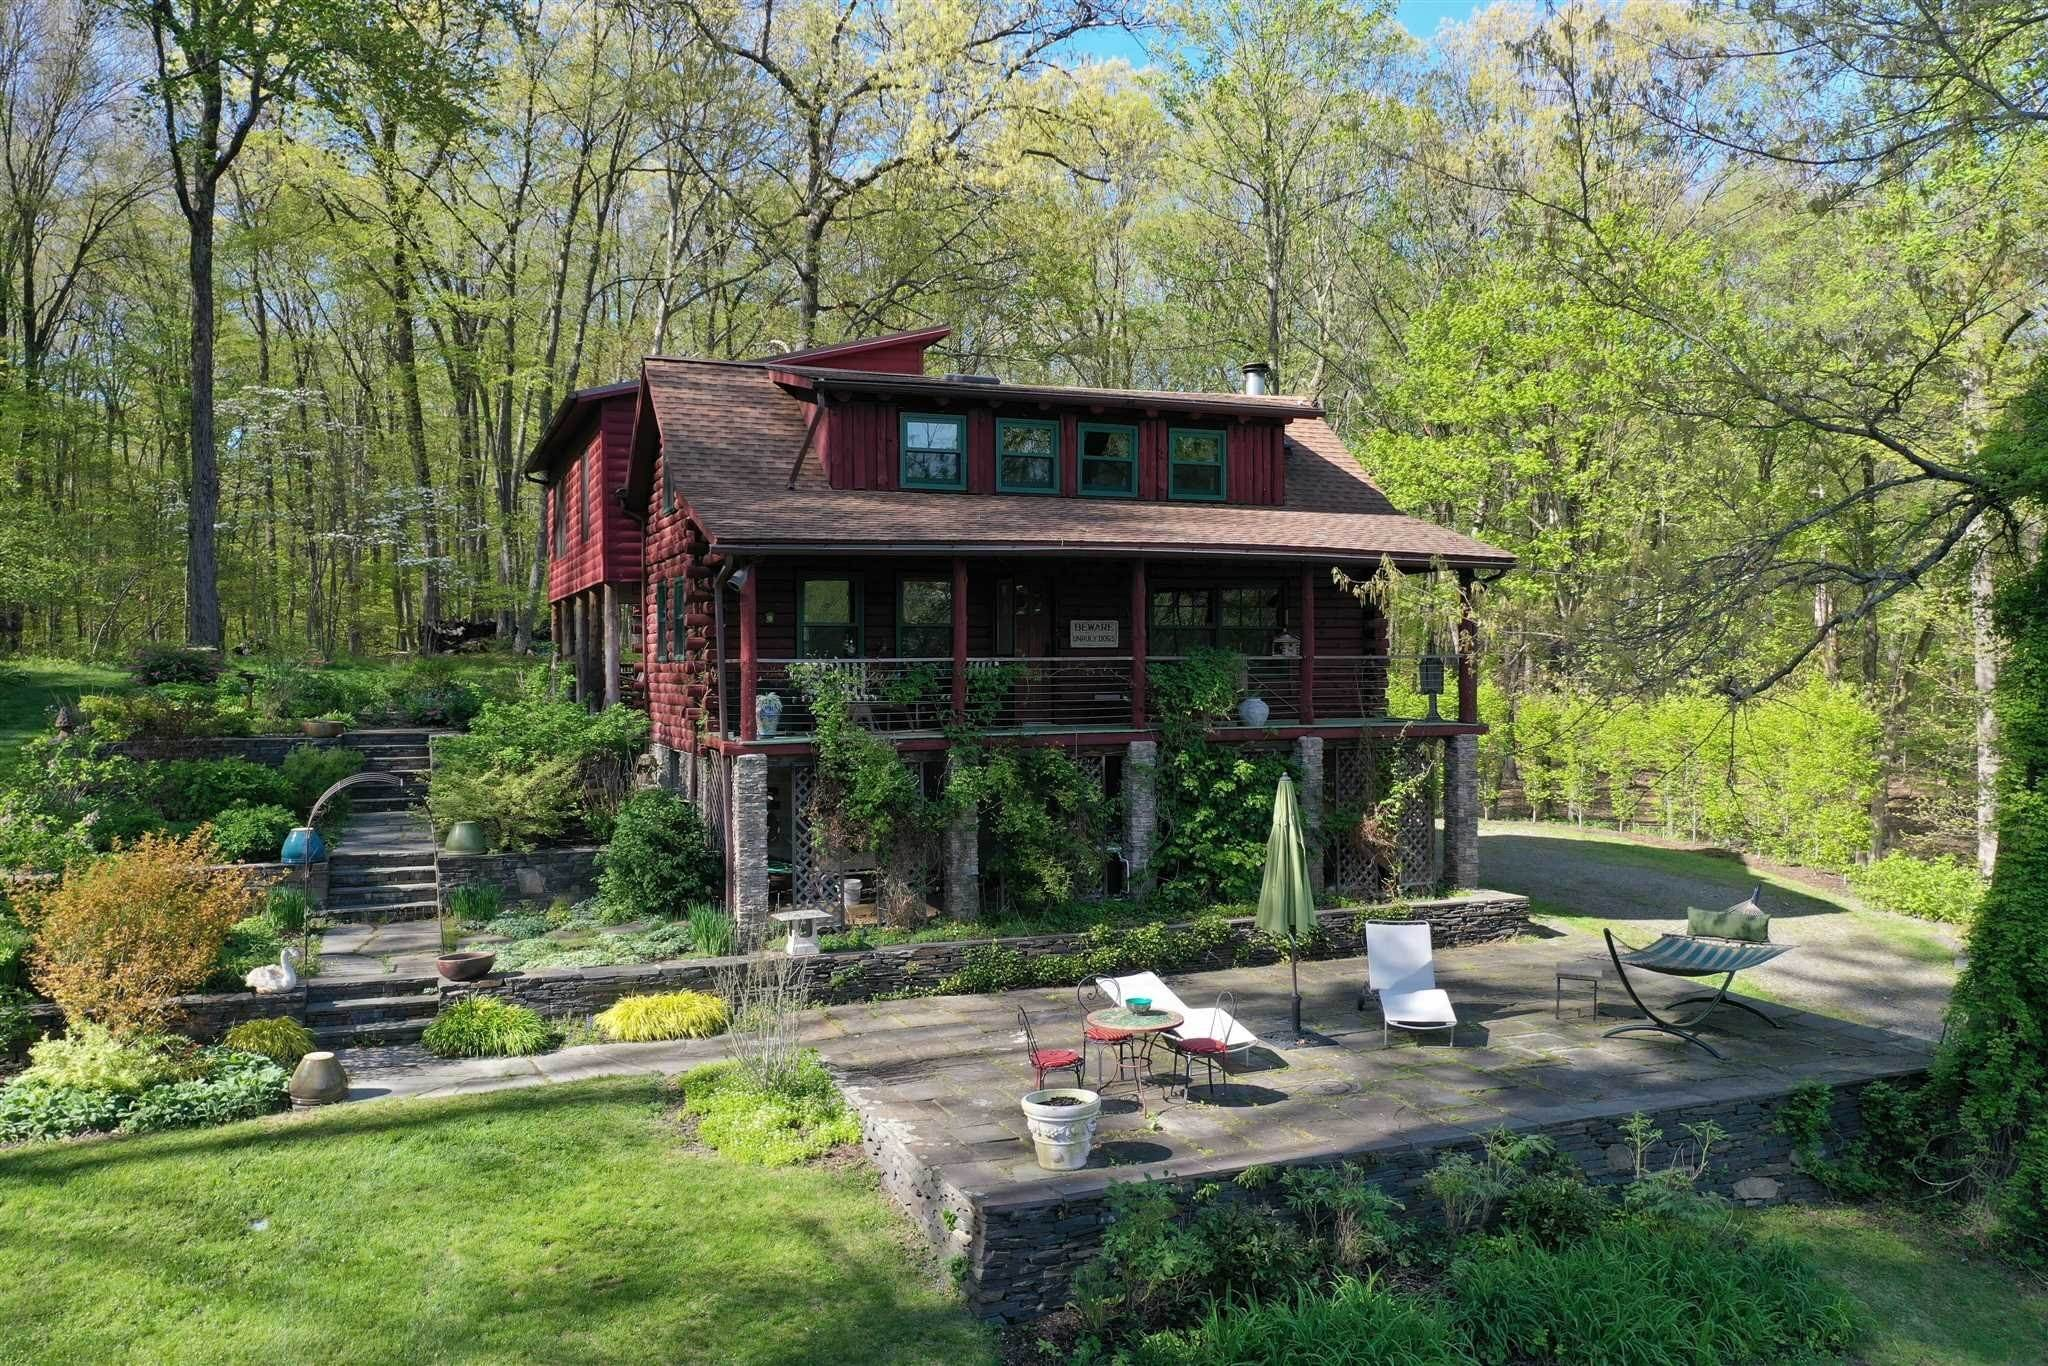 Single Family Homes for Sale at 247 CEDAR HEIGHTS Road Rhinebeck, New York 12572 United States